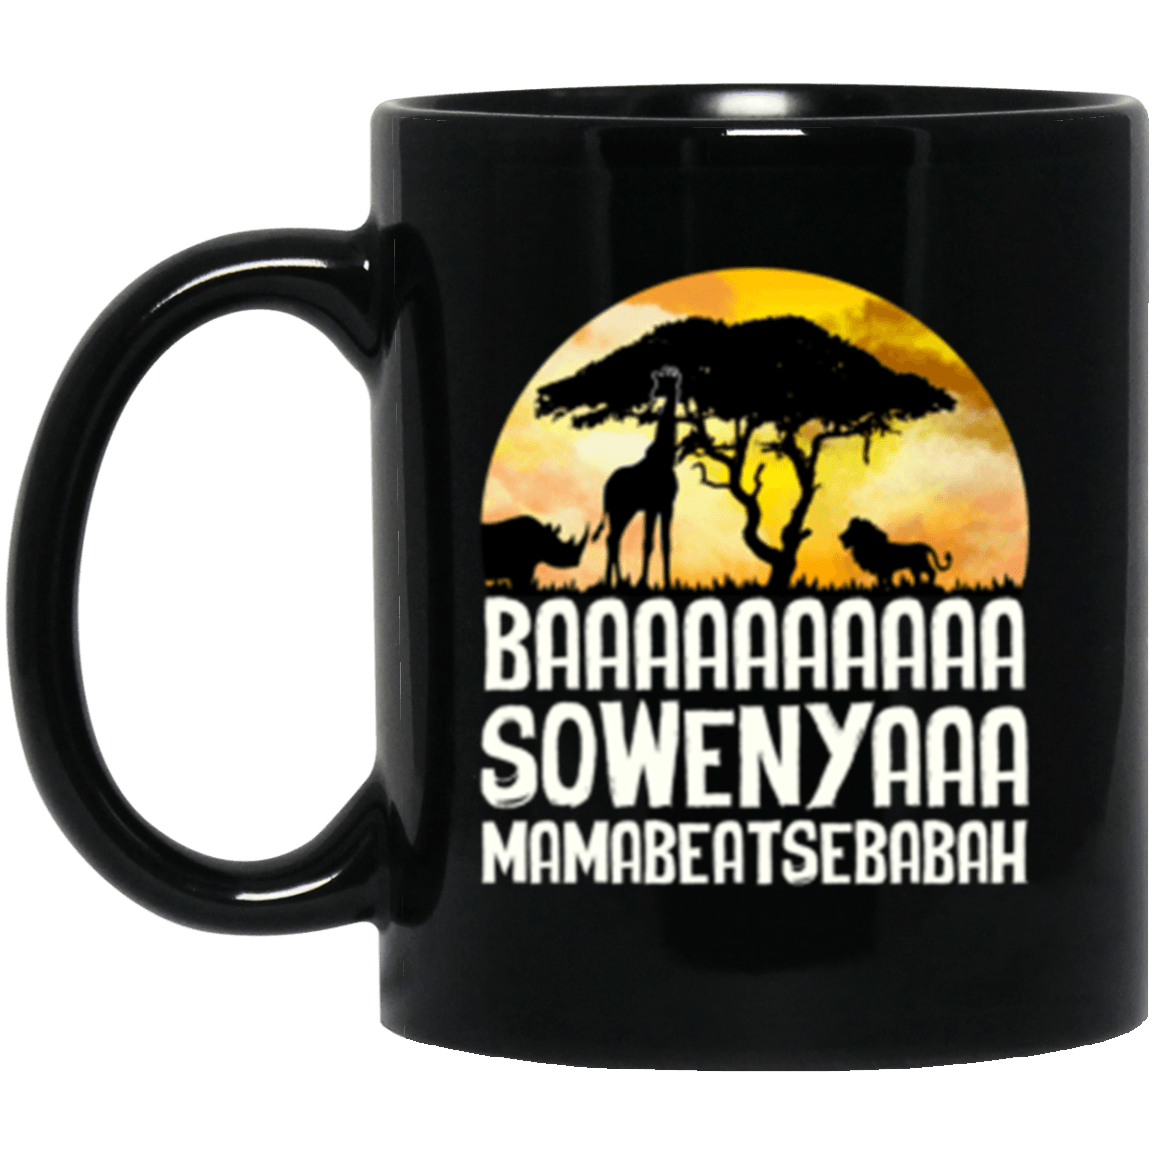 Baa Sowenya Black Mug 11oz (2-sided)